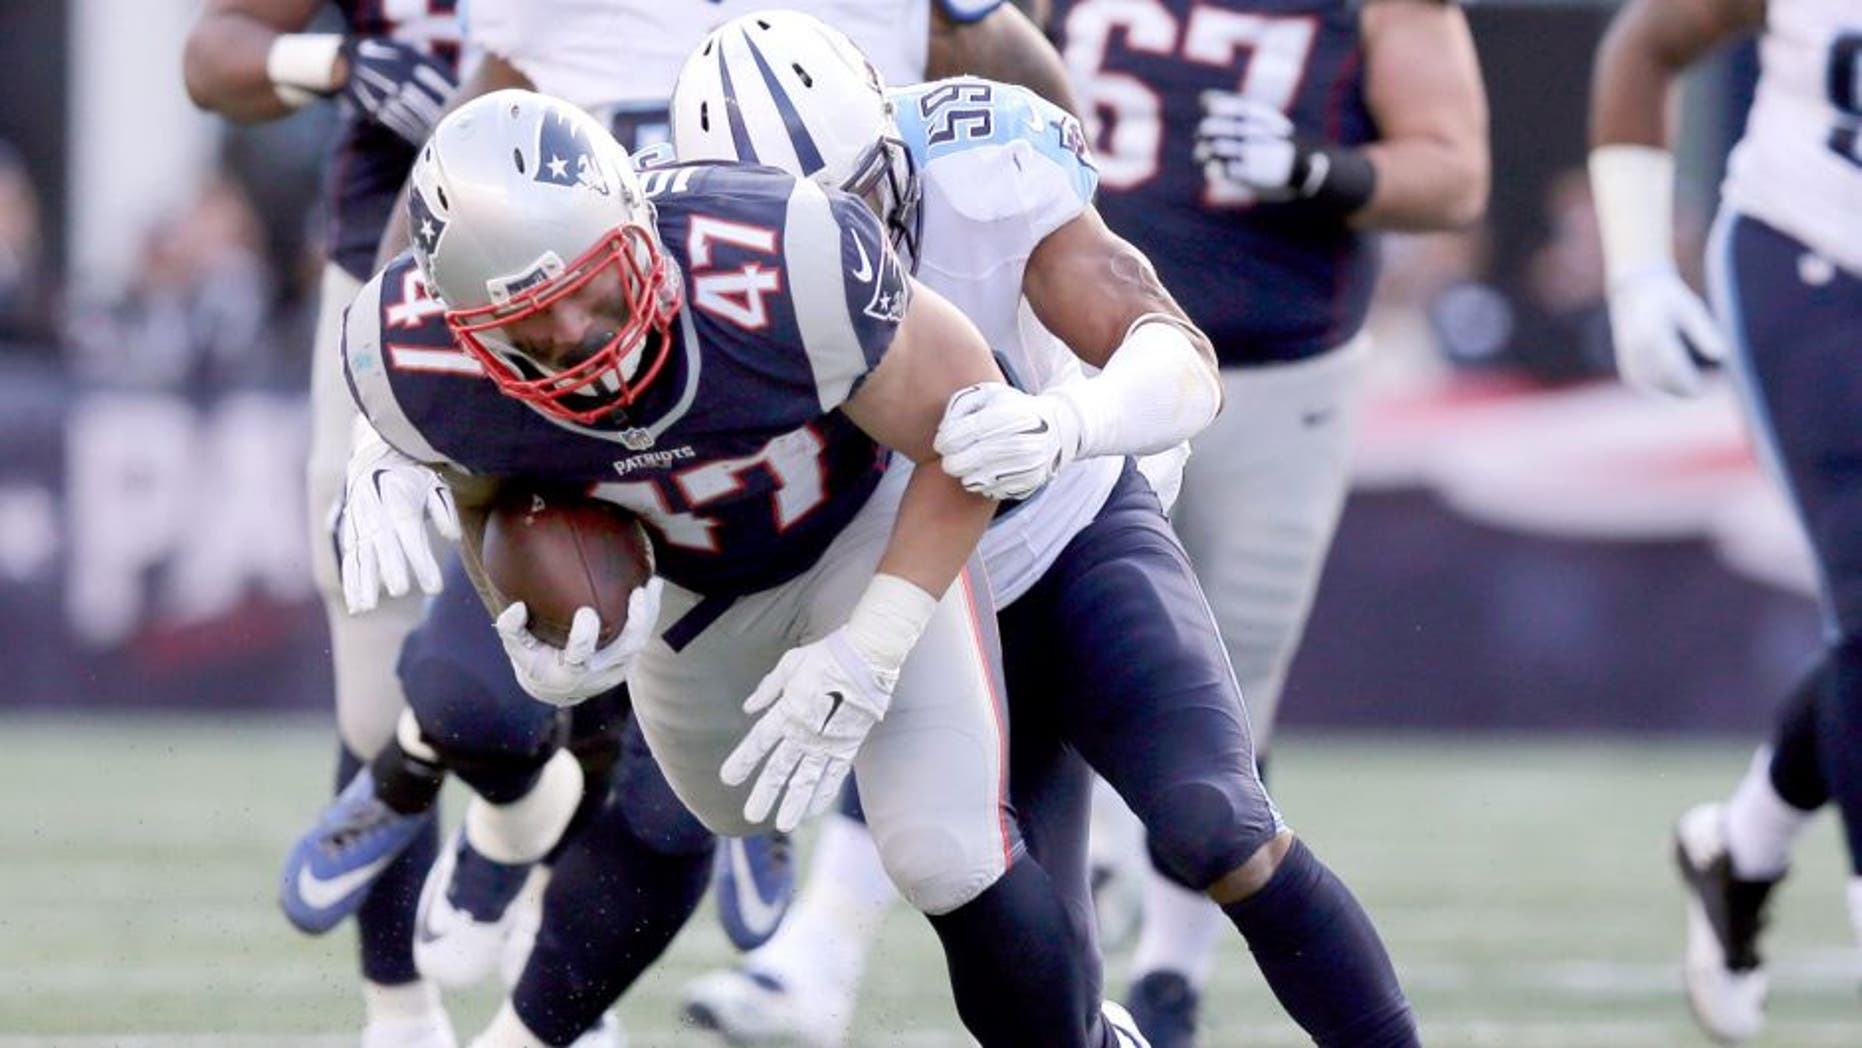 Tennessee Titans linebacker Wesley Woodyard (59) tackles New England Patriots running back Joey Iosefa (47) in the first half of an NFL football game, Sunday, Dec. 20, 2015, in Foxborough, Mass. (AP Photo/Charles Krupa)